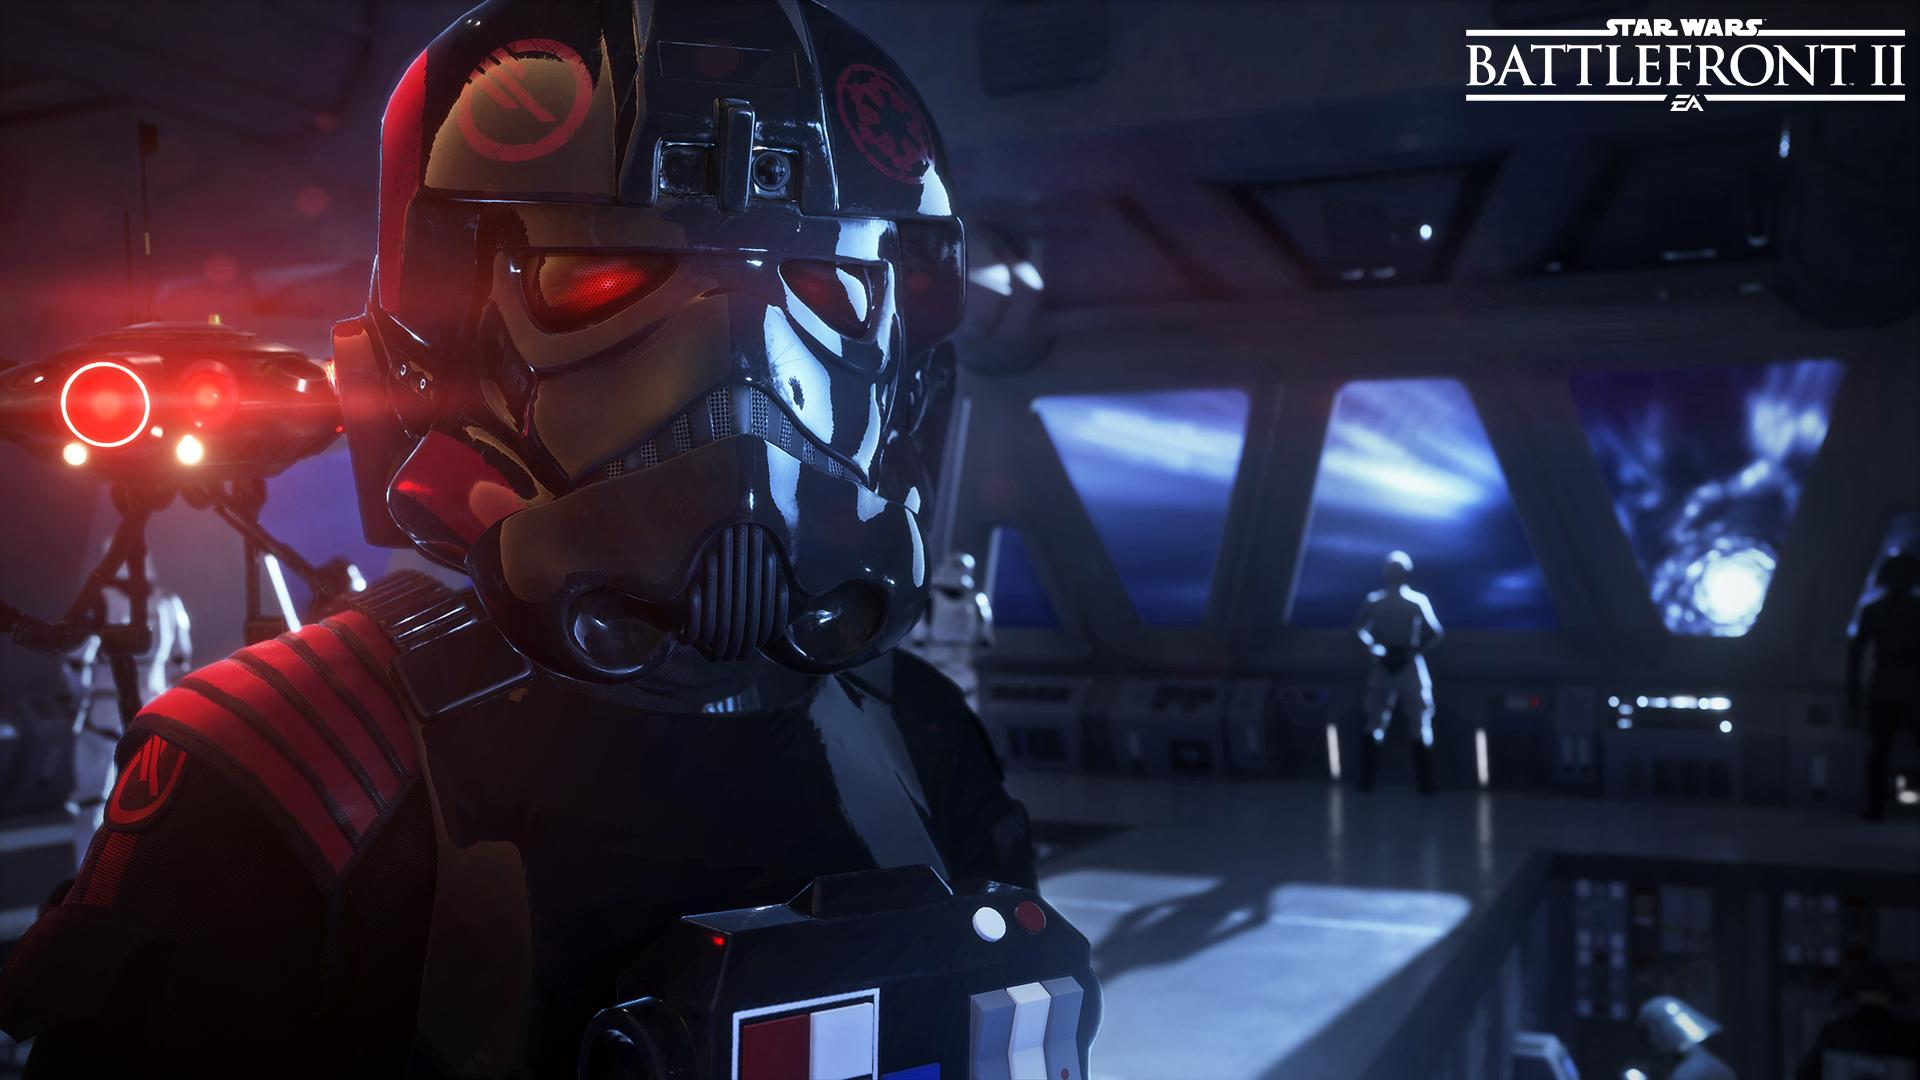 Star Wars Battlefront Ii Invites You To The Dark Side In November Engadget